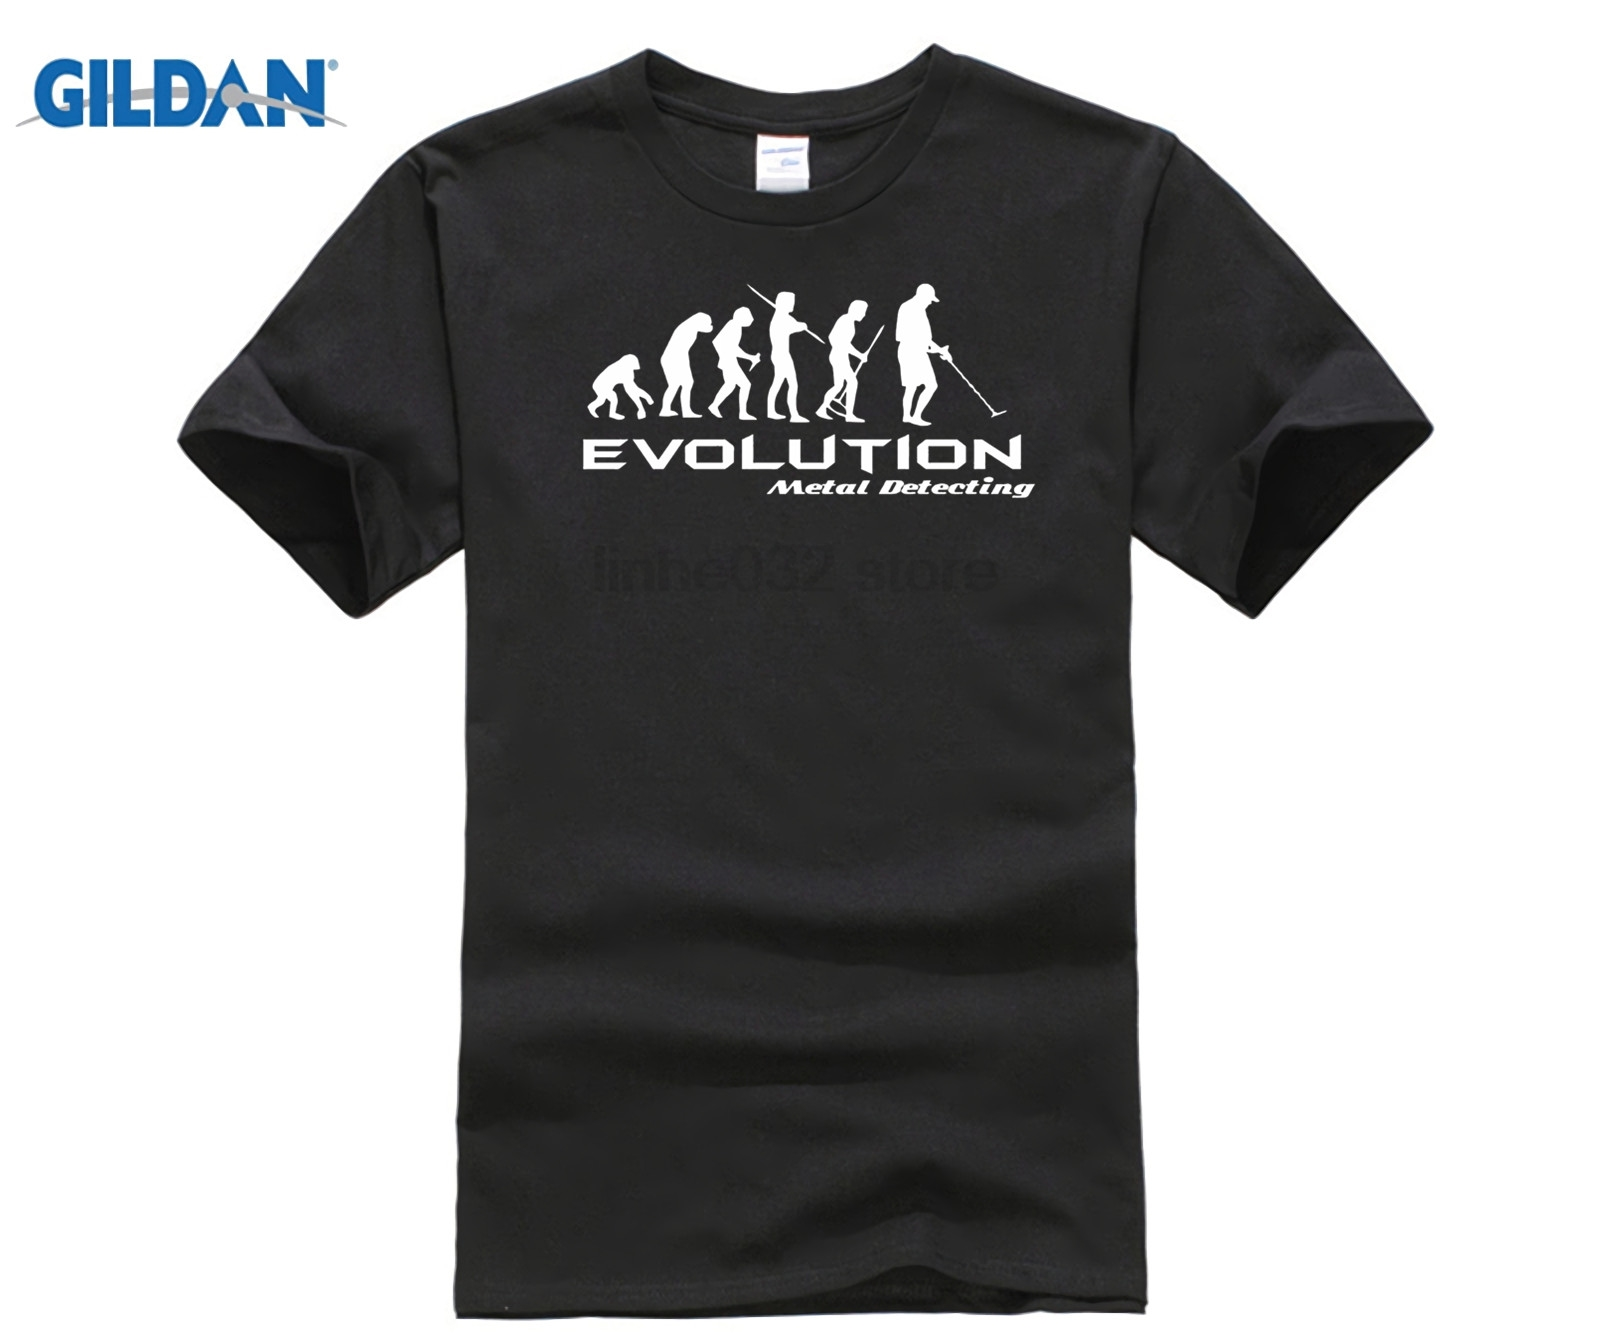 2020 New Fashion Brand Clothing Metal Detector Evolution T Shirt Funny Tee Shirt Darwin Theory Hobby Retro Tee Shirts